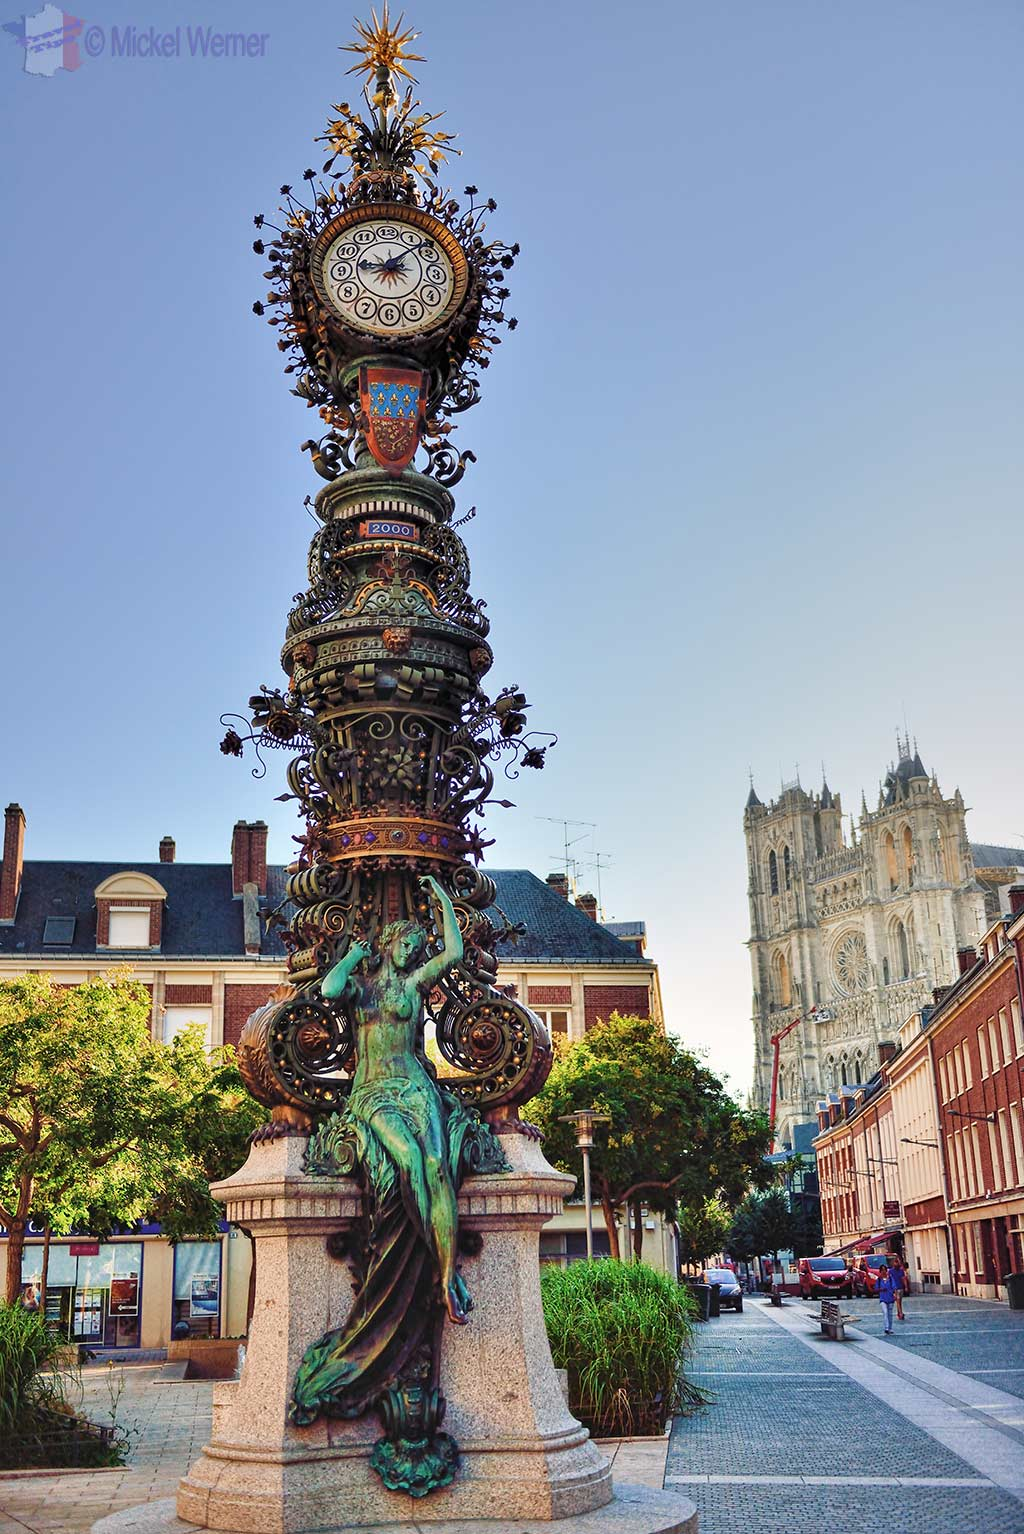 The Dewailly Clock of Amiens